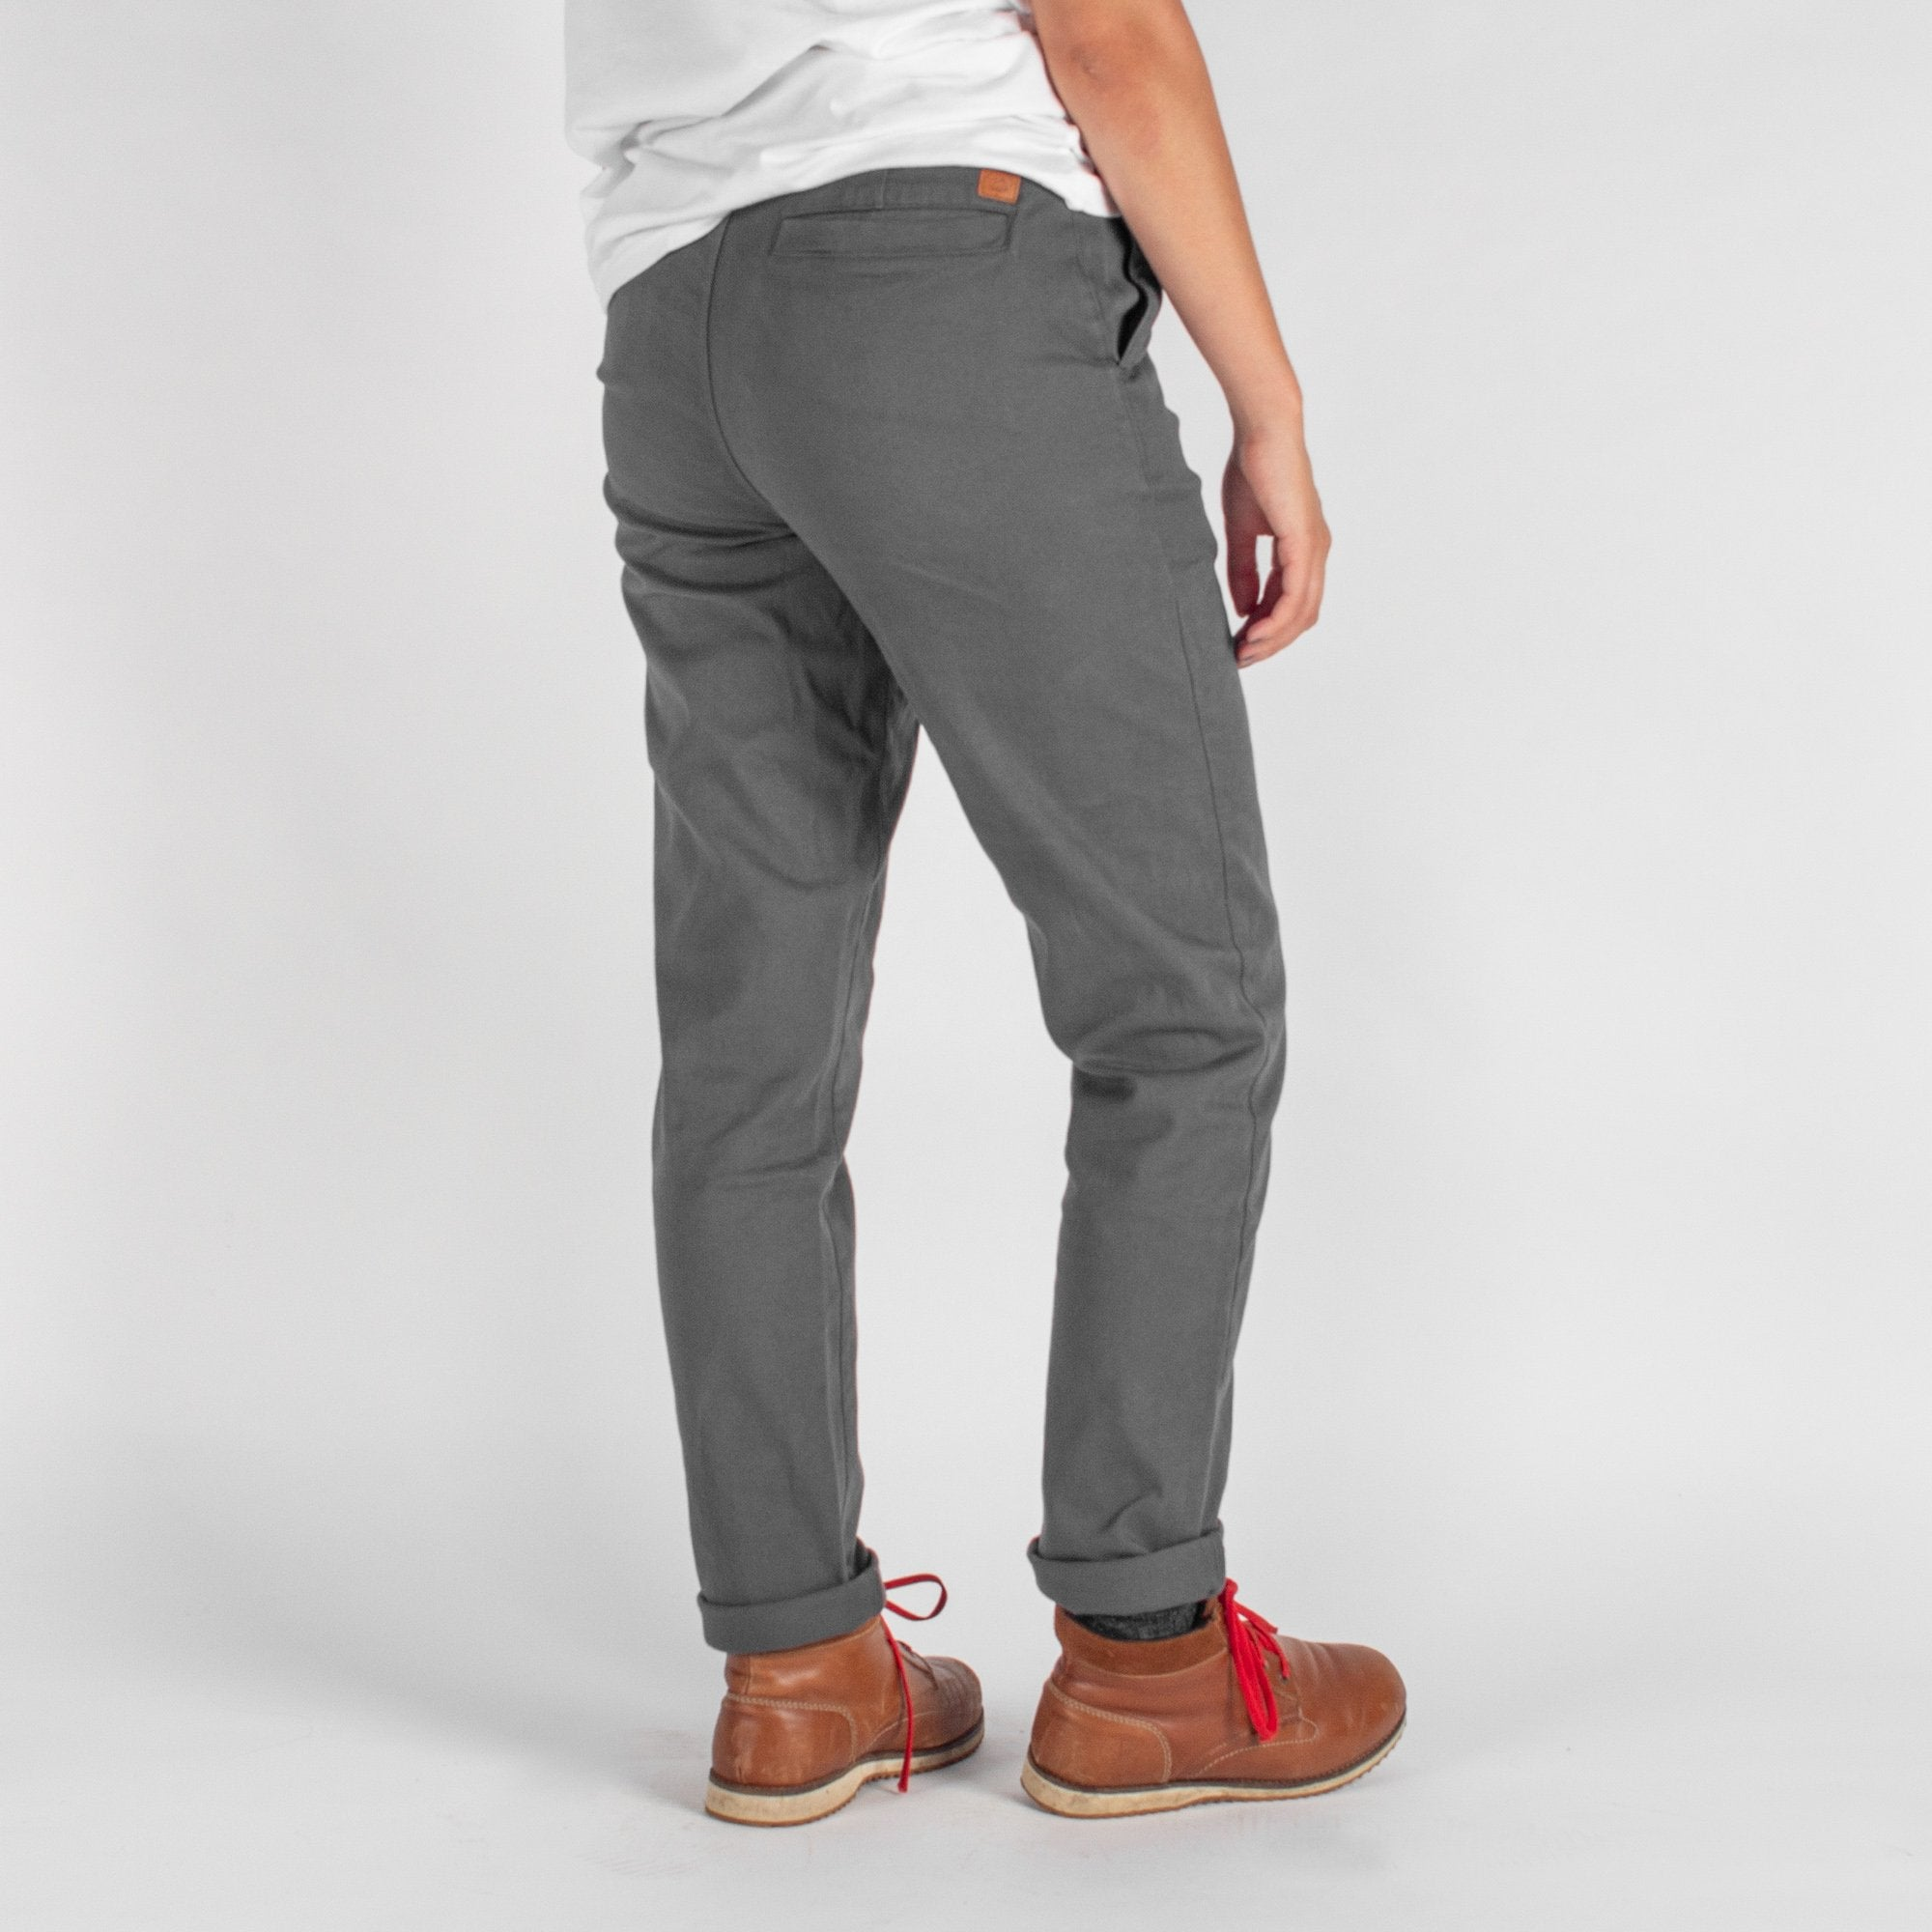 Offtrail Trousers - Grey image 5